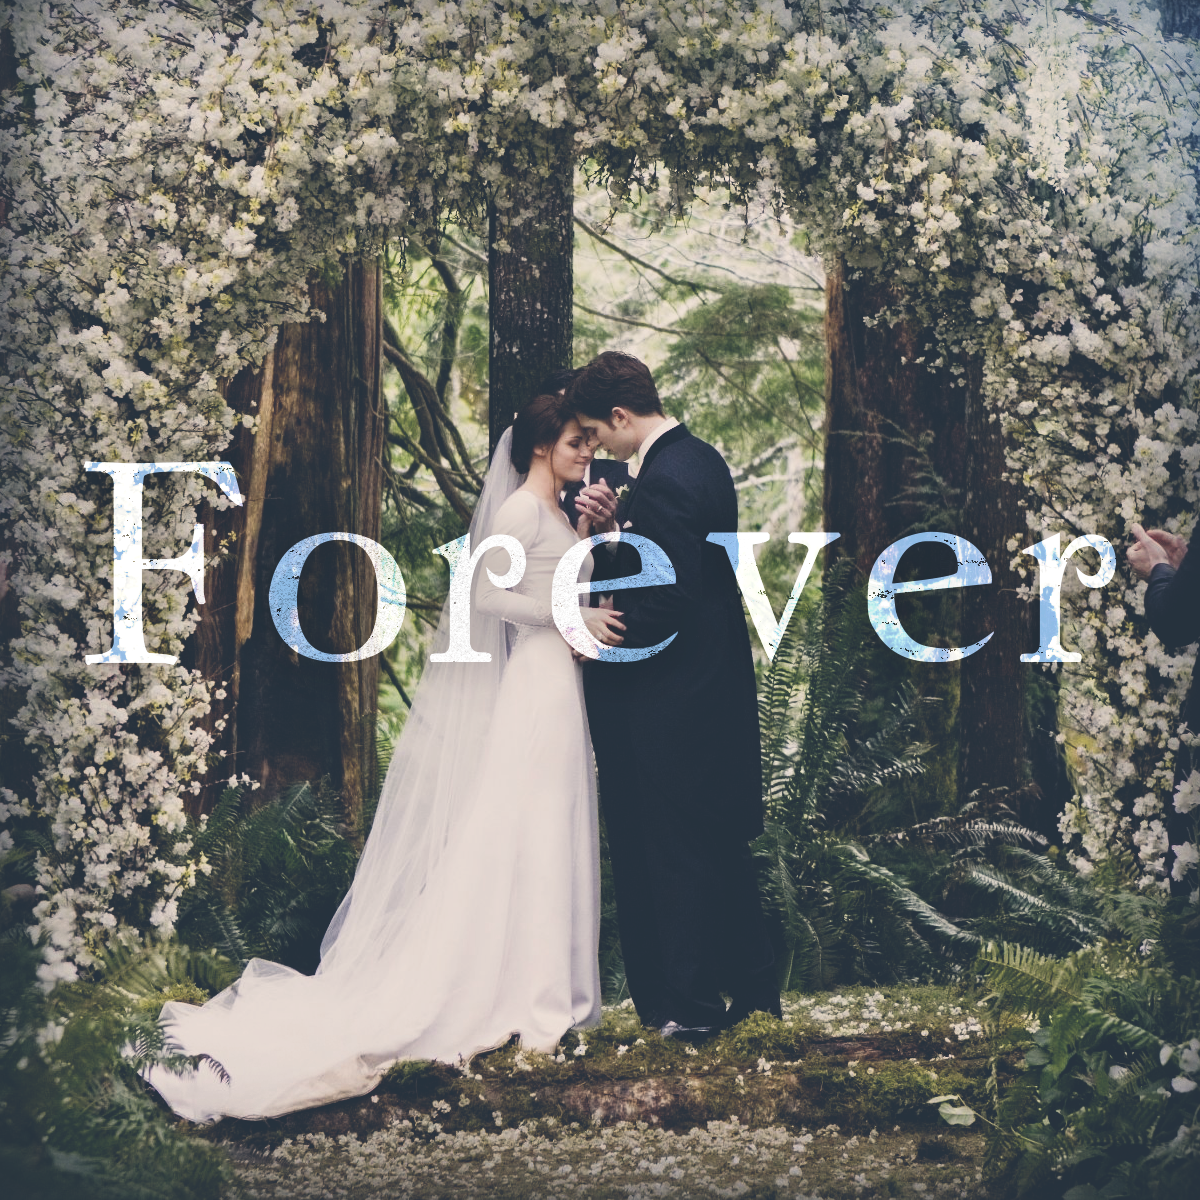 I promise to love you forever… every single day of forever. http://t.co/OJ6YyEUH8n